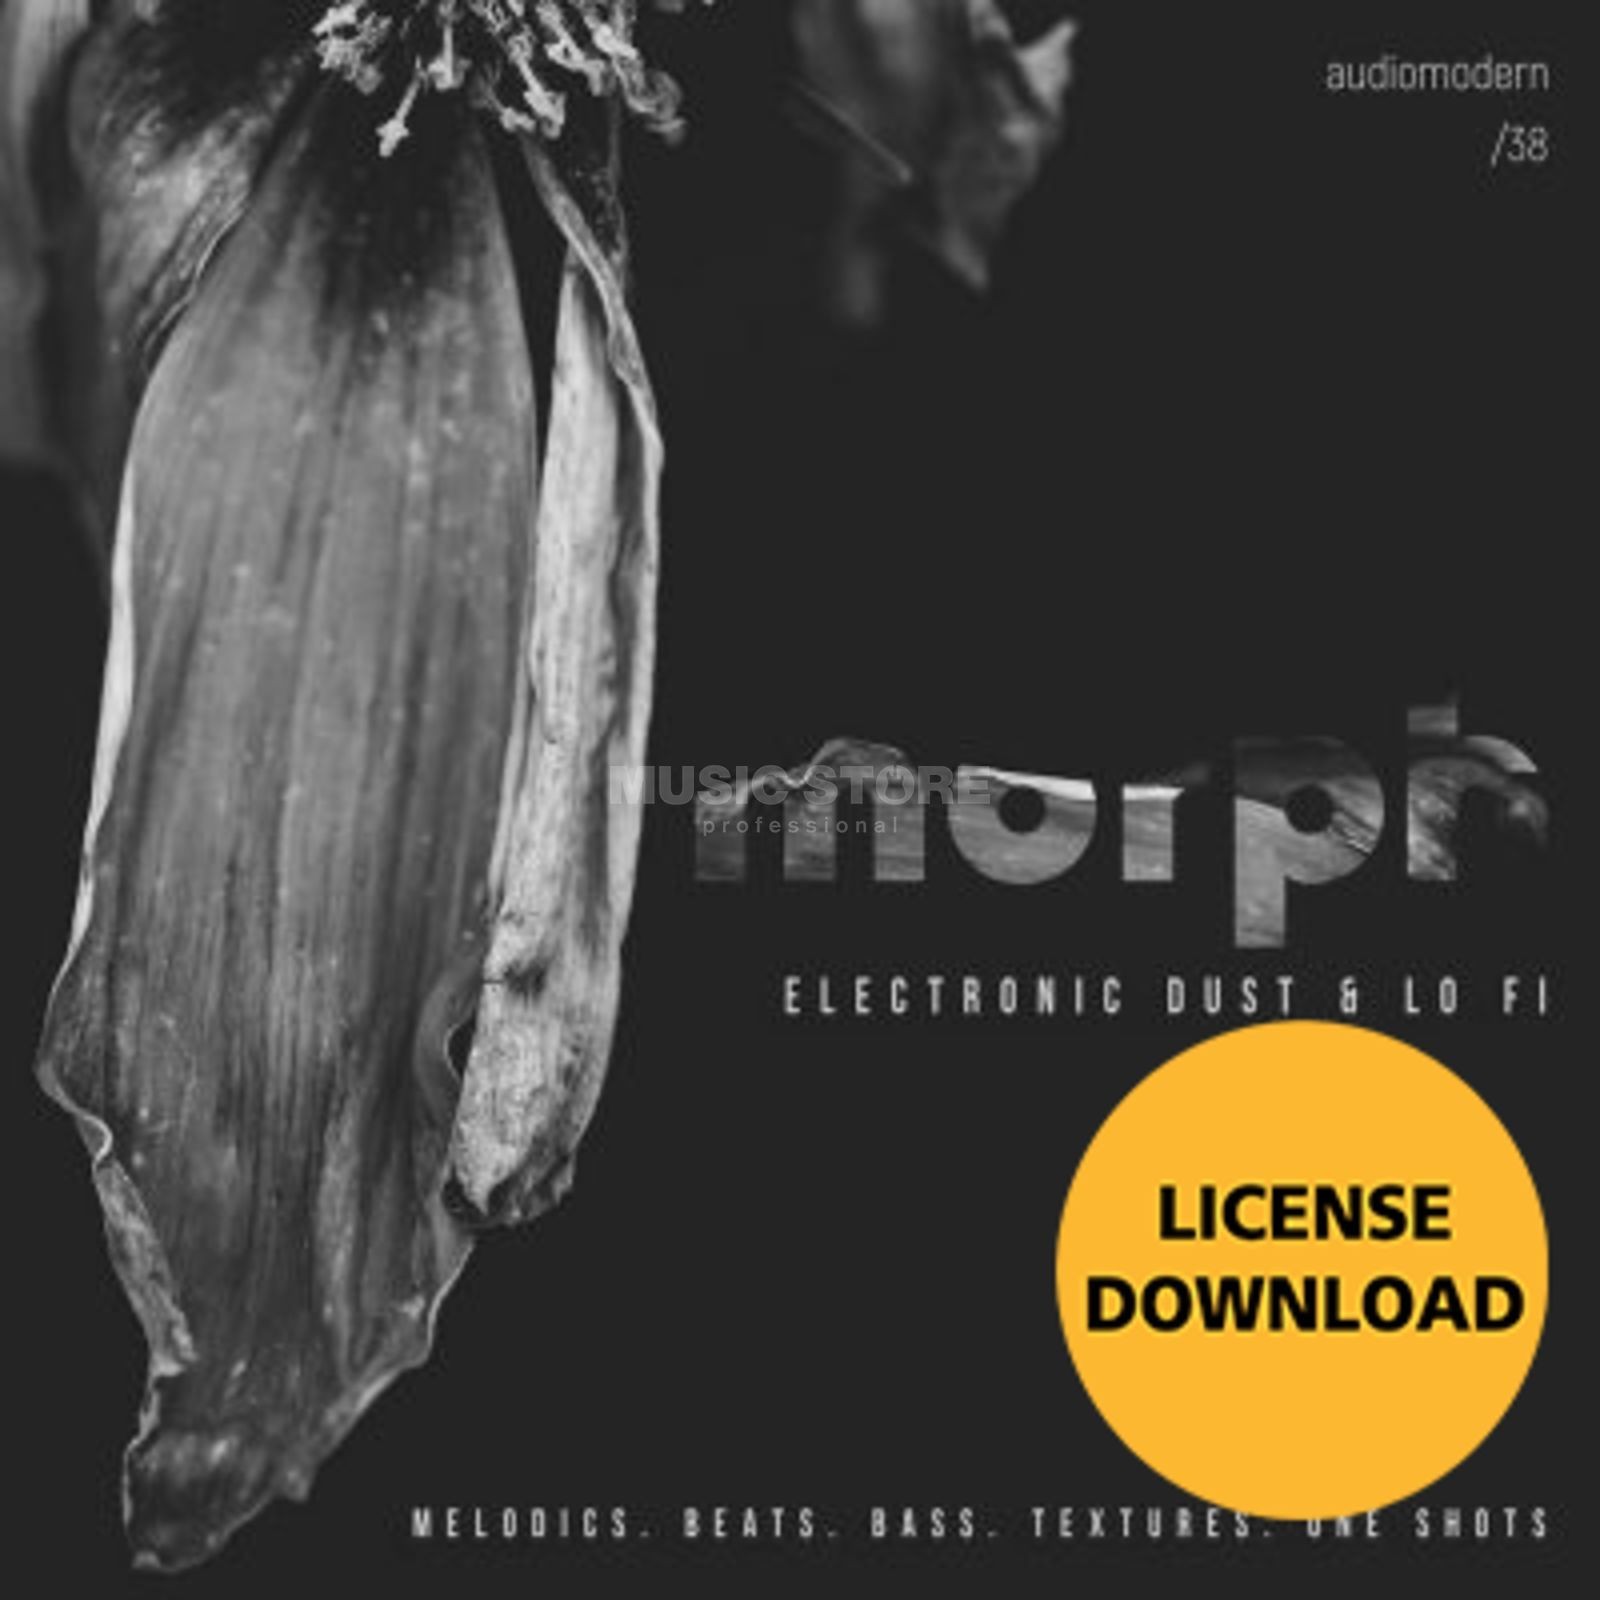 Audiomodern Morph License Code Product Image